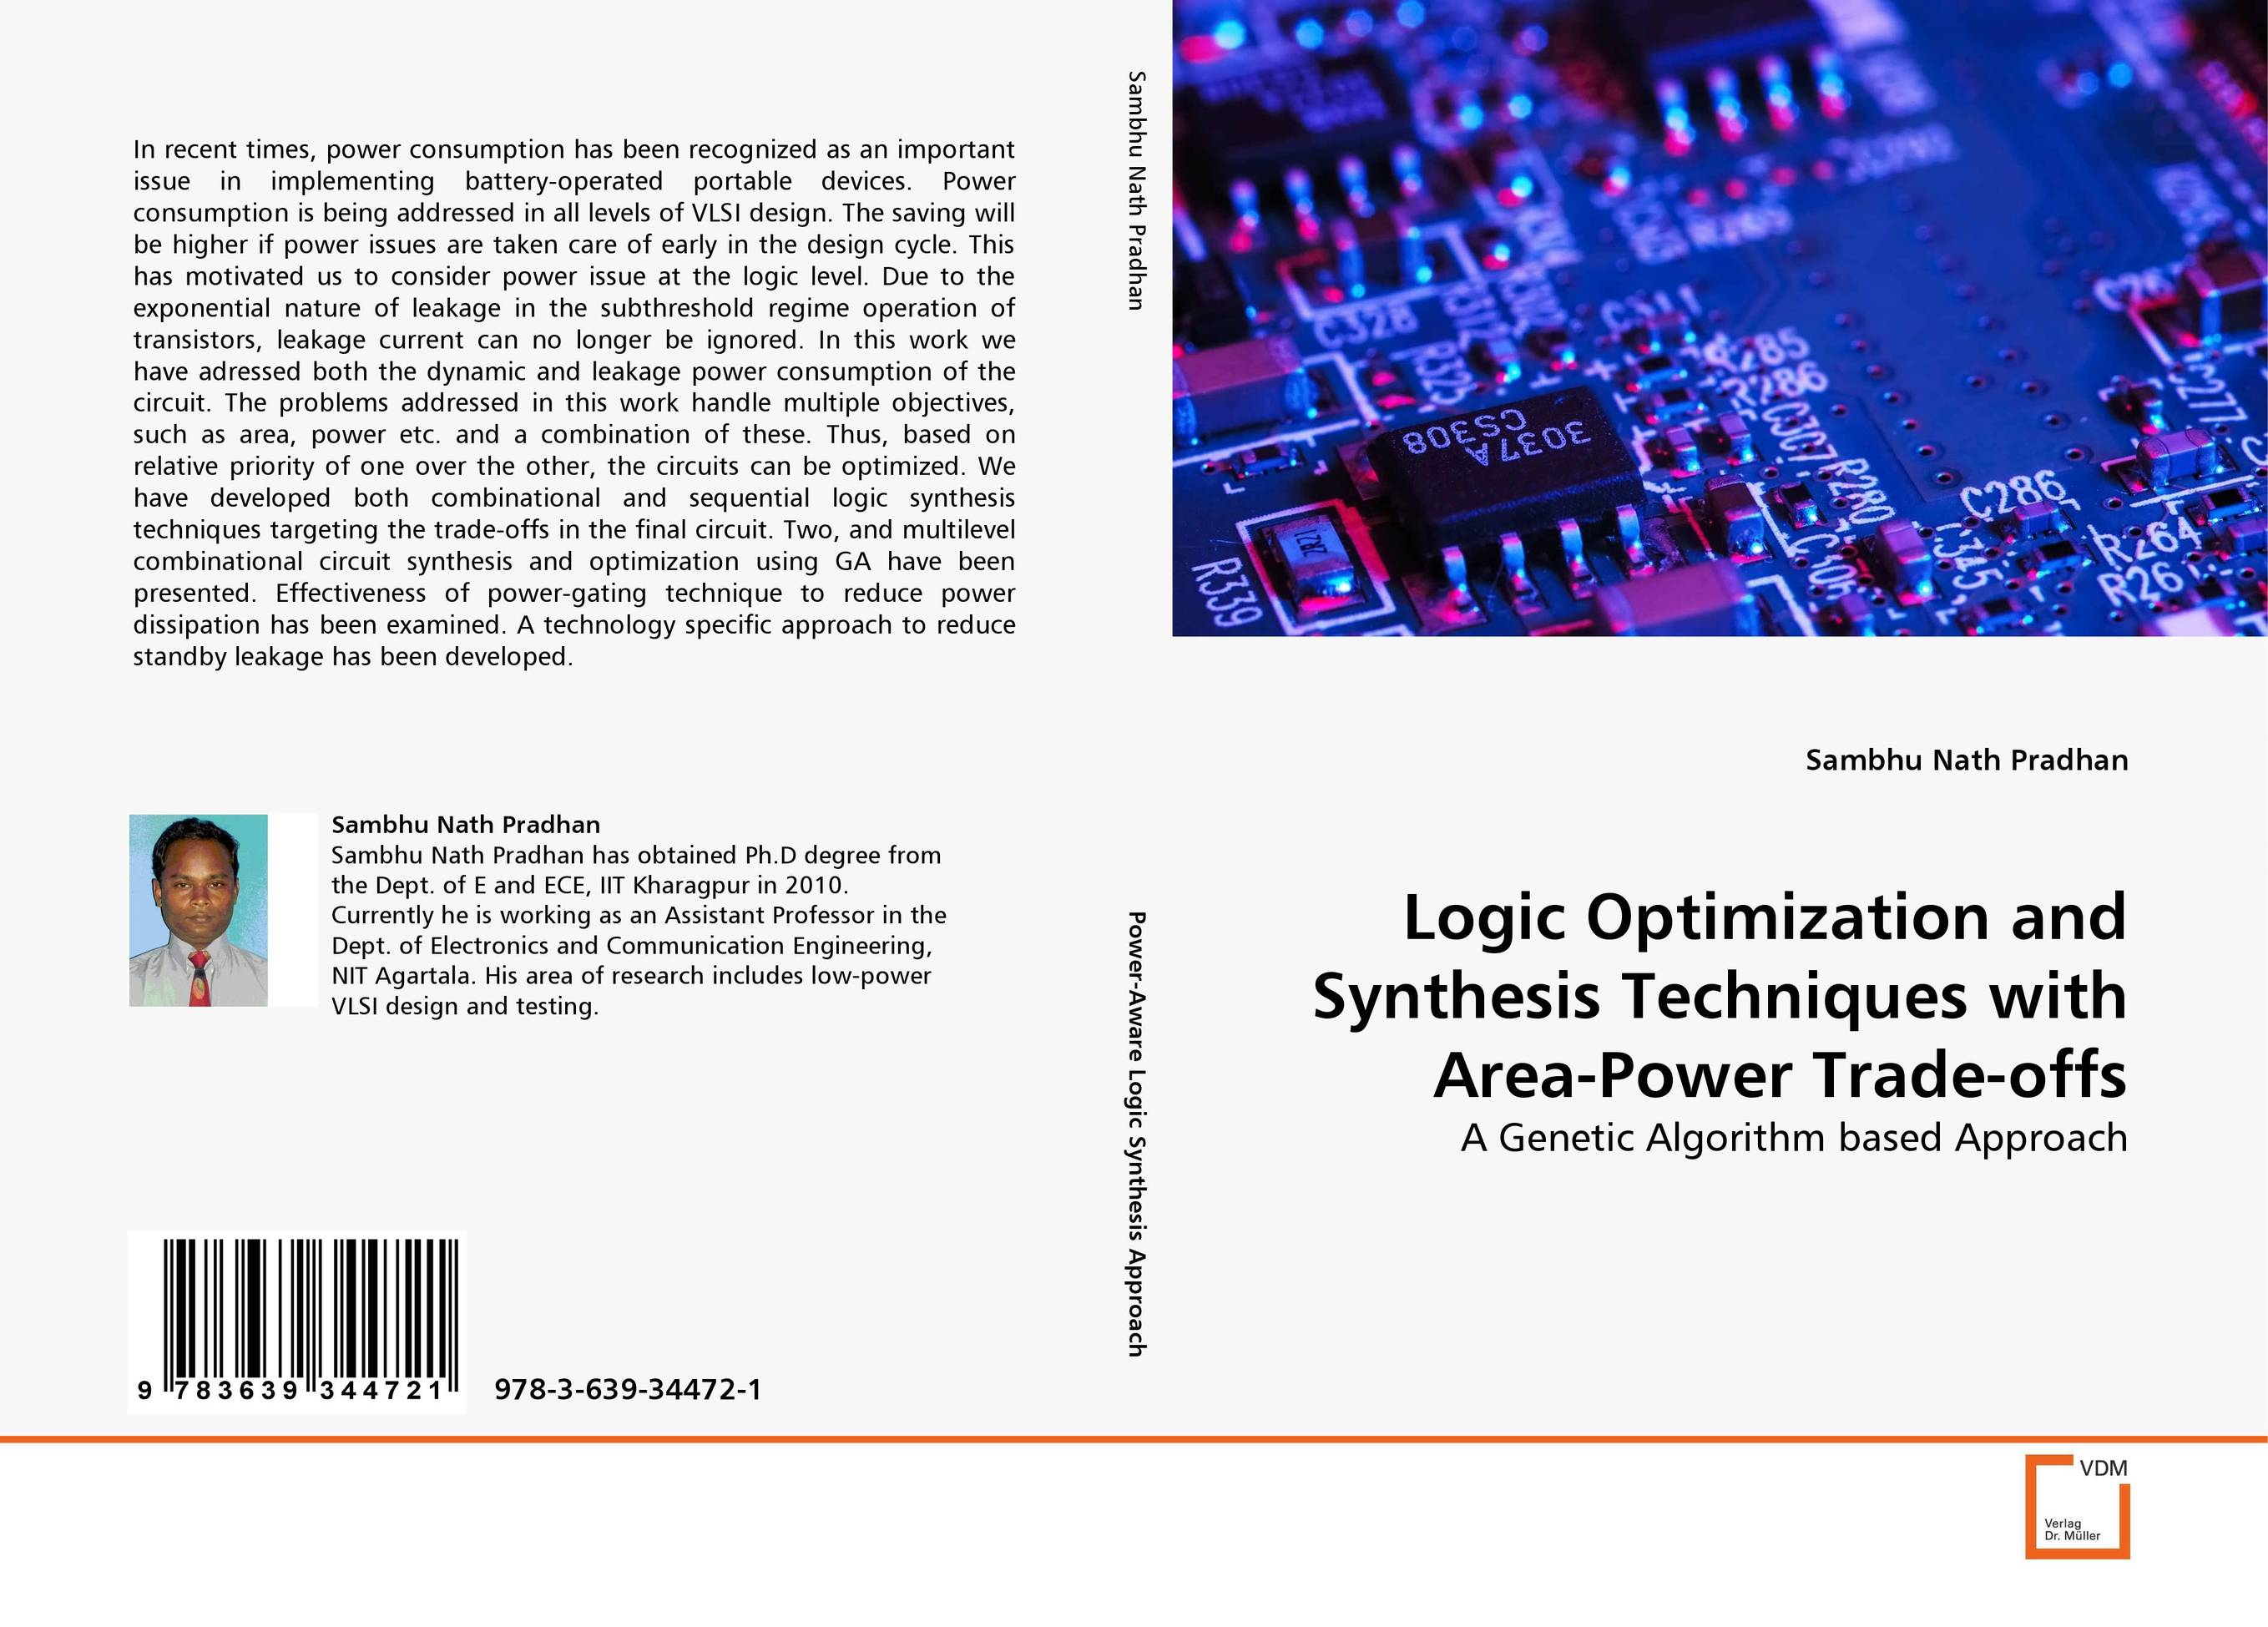 Logic Optimization and Synthesis Techniques with Area-Power Trade-offs number machine 7 position automatic numbering machine into the number coding page chapter marking machine digital stamp